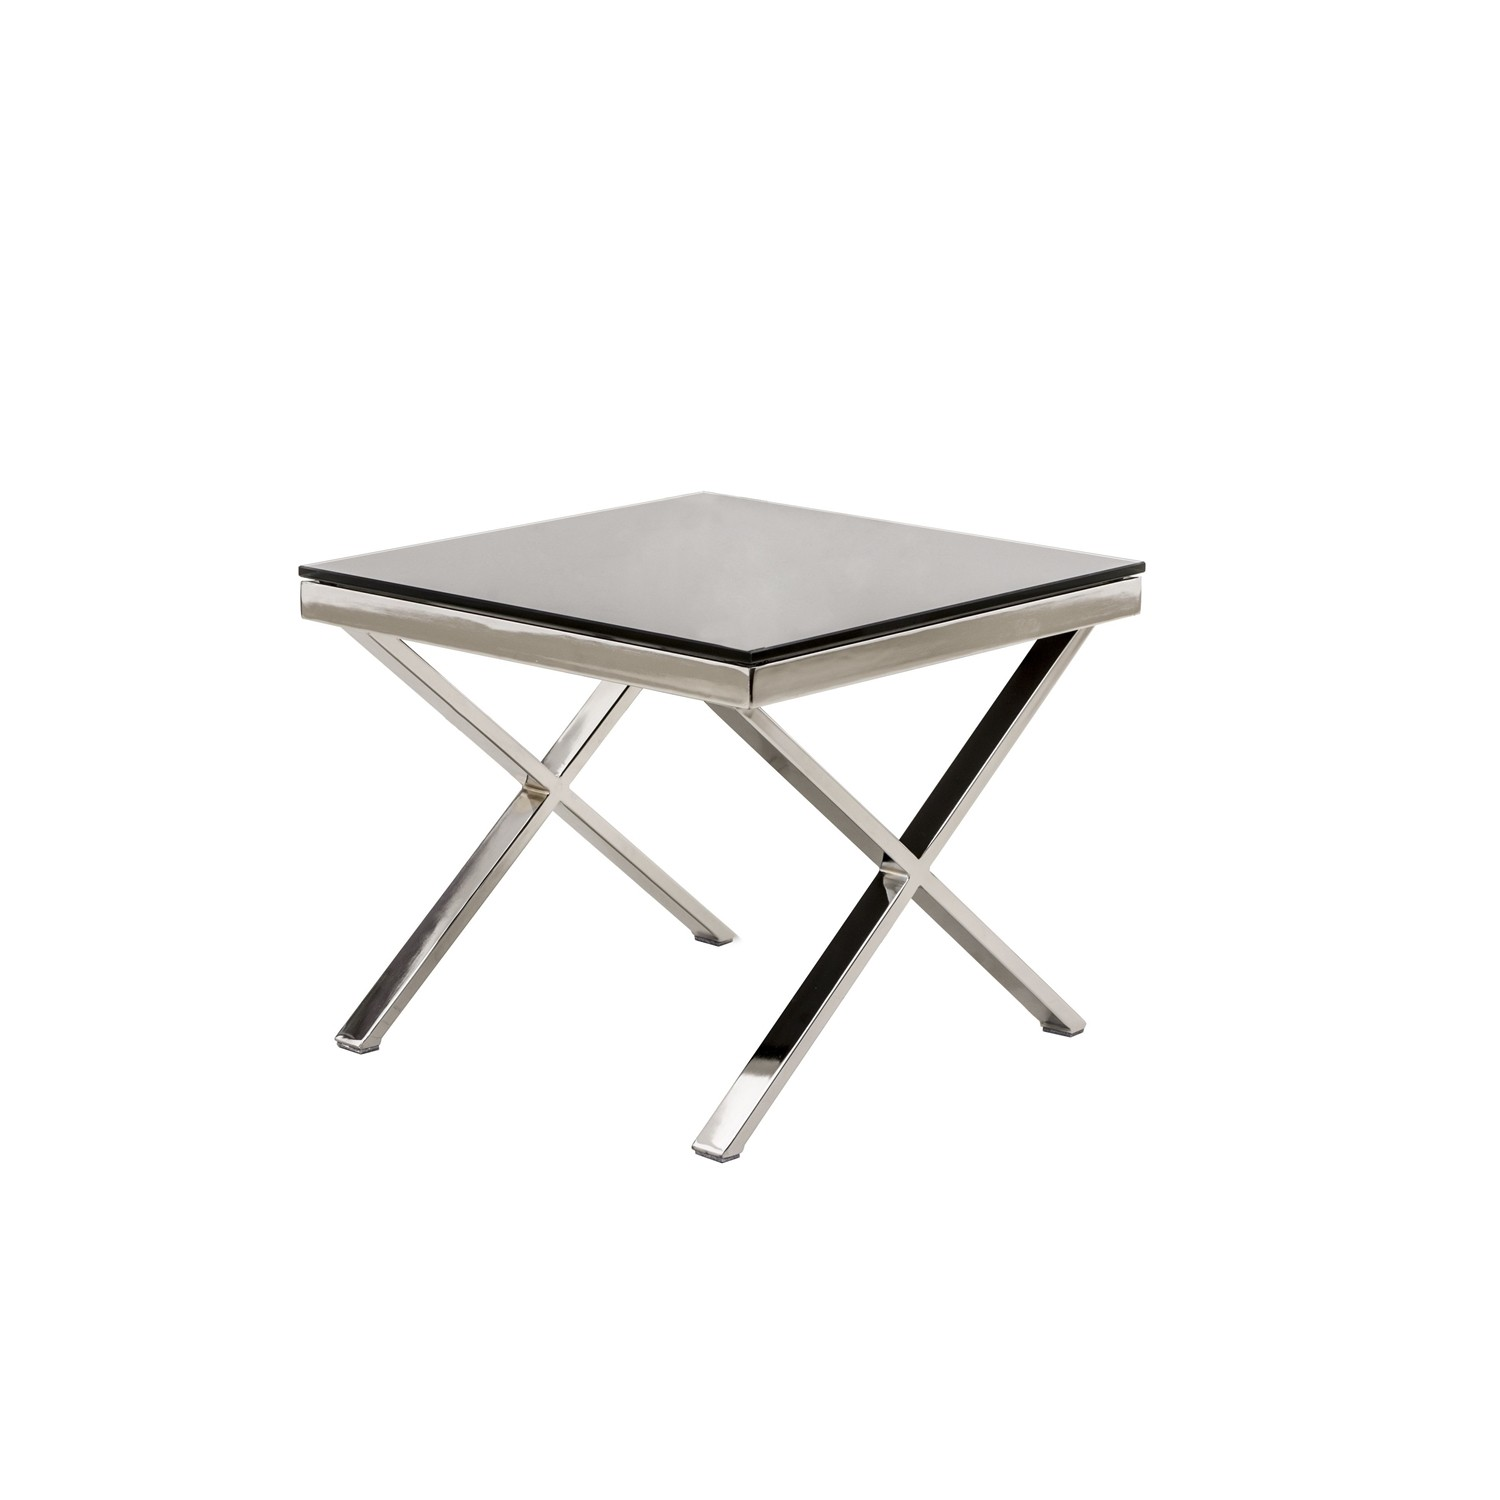 Casa zara end table lamptable silver leekes for Table zara home